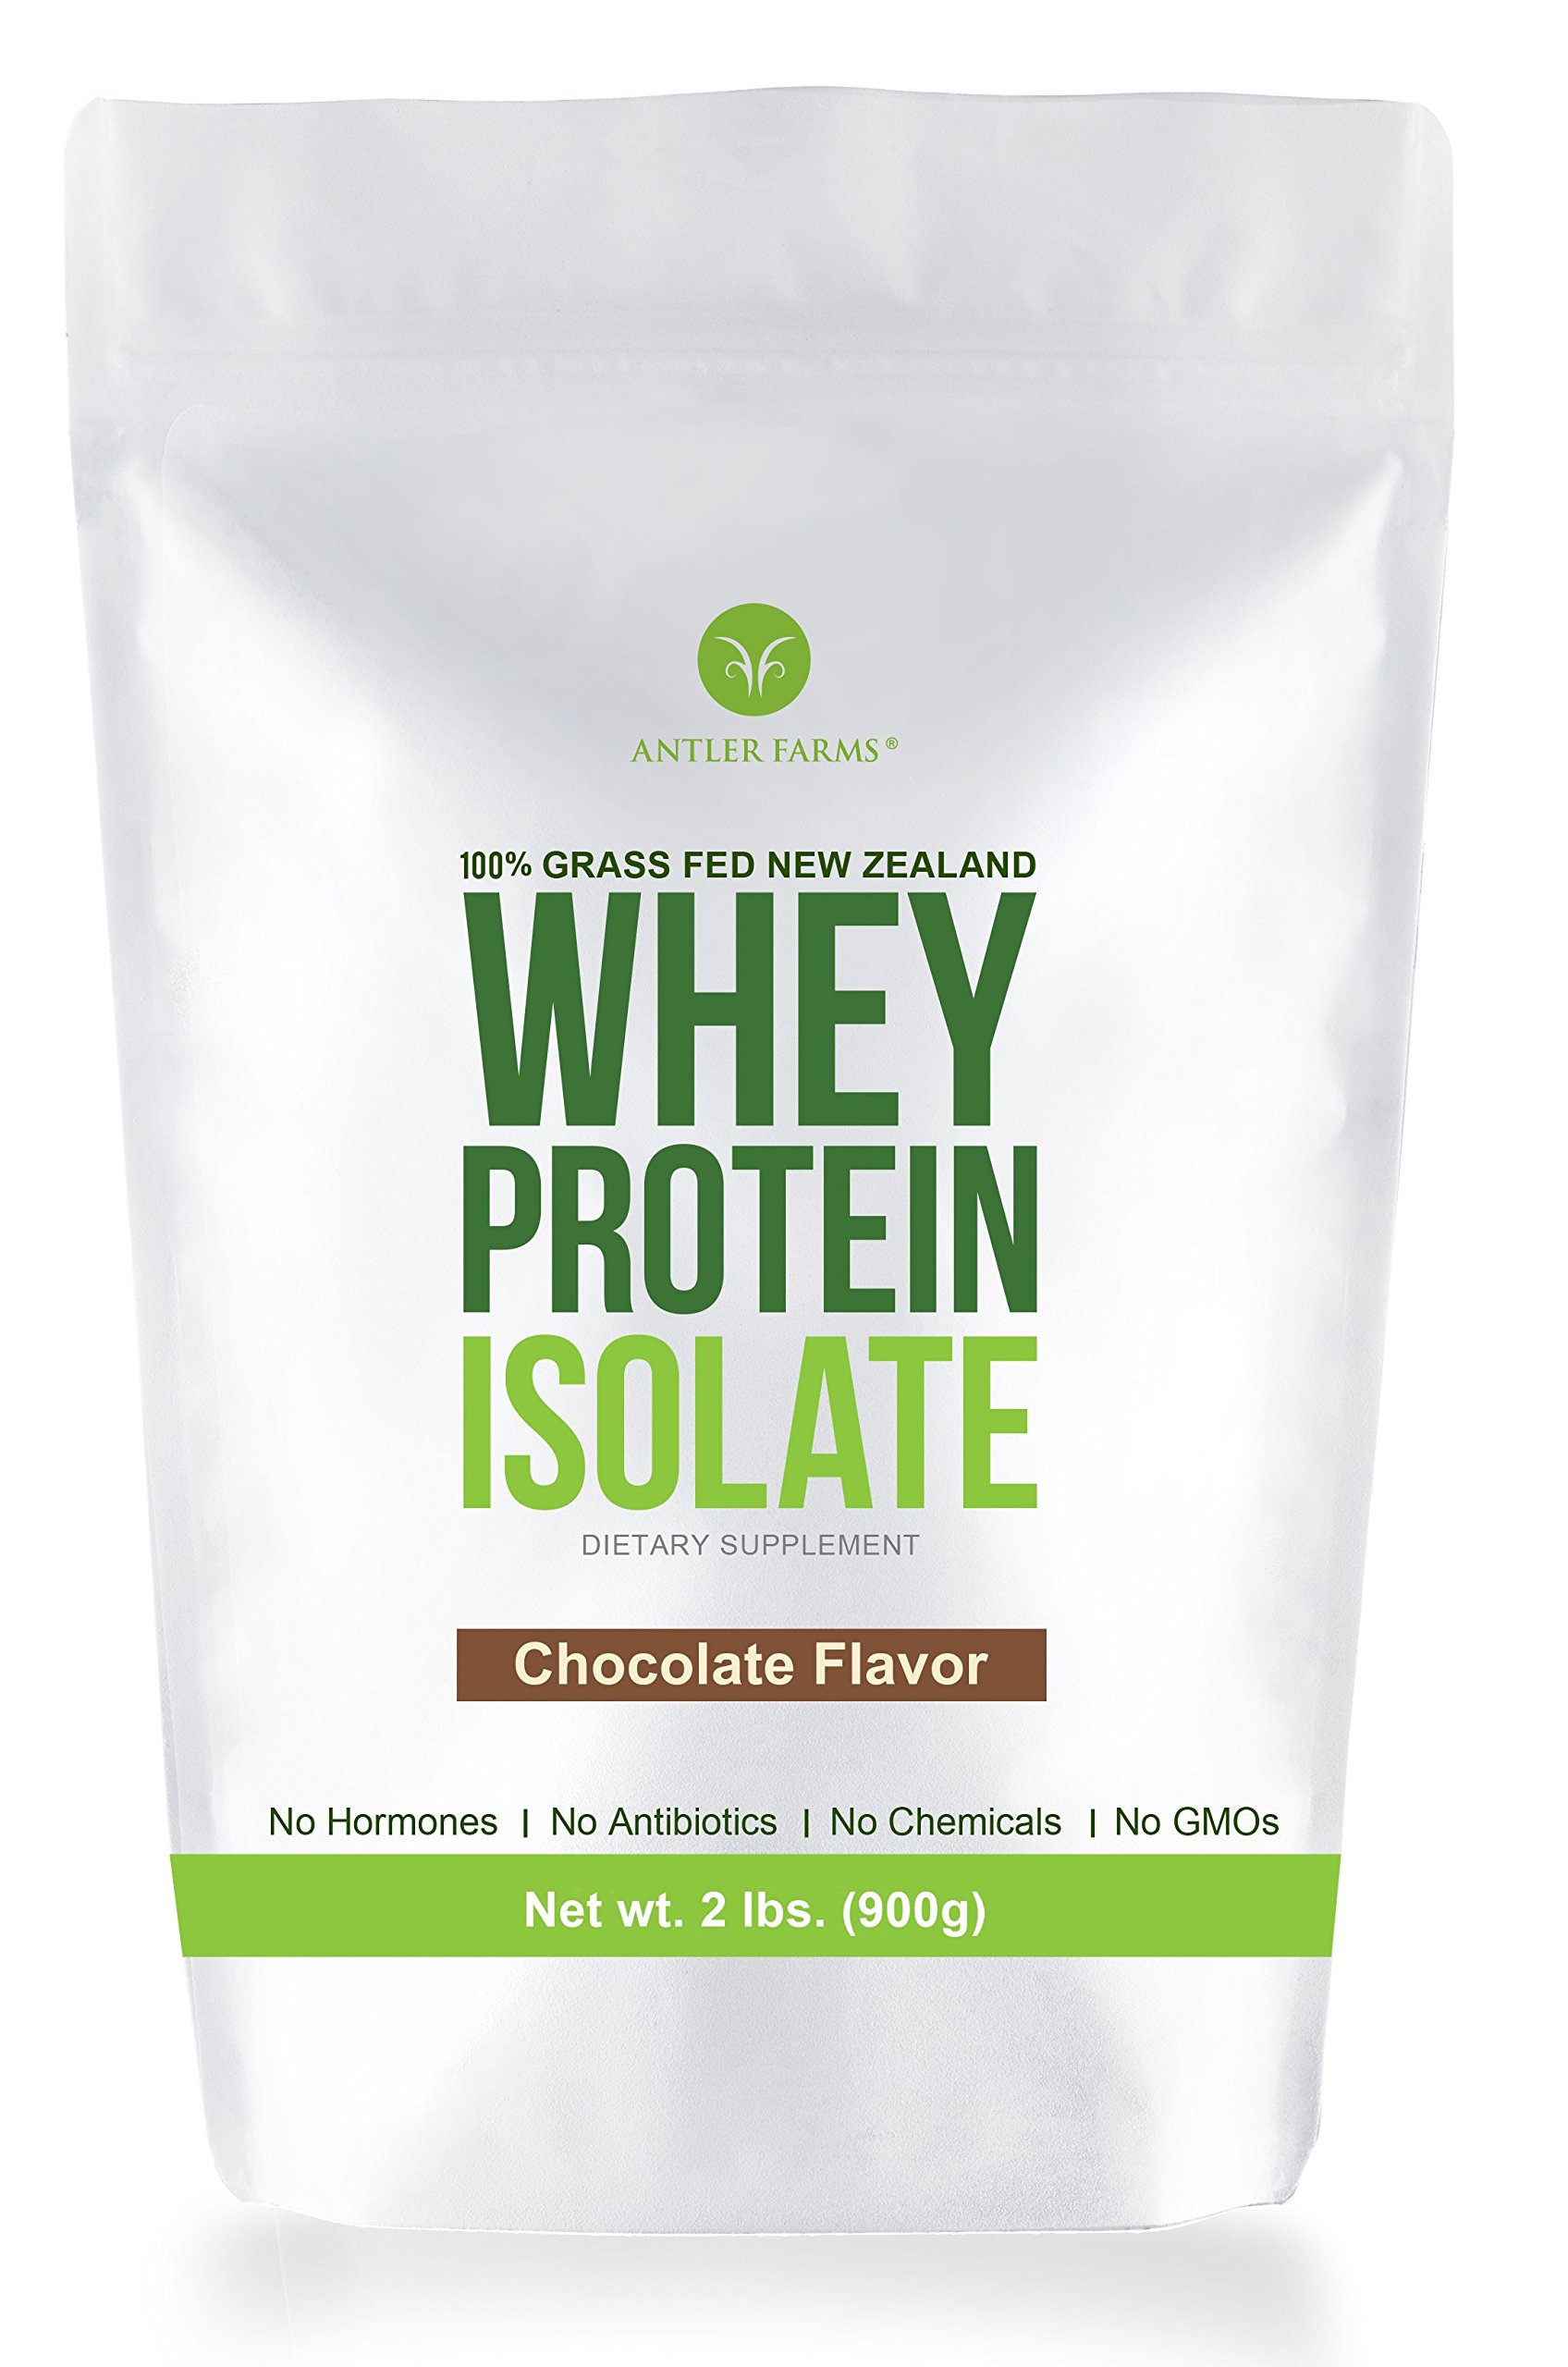 Antler Farms - 100% Grass Fed New Zealand Whey Protein Isolate, Chocolate Flavor, 30 Servings, 2 lbs - Delicious, Cold Processed, Rapidly Absorbed, Keto Friendly, NO Hormones, NO Antibiotics, NO GMOs by Antler Farms